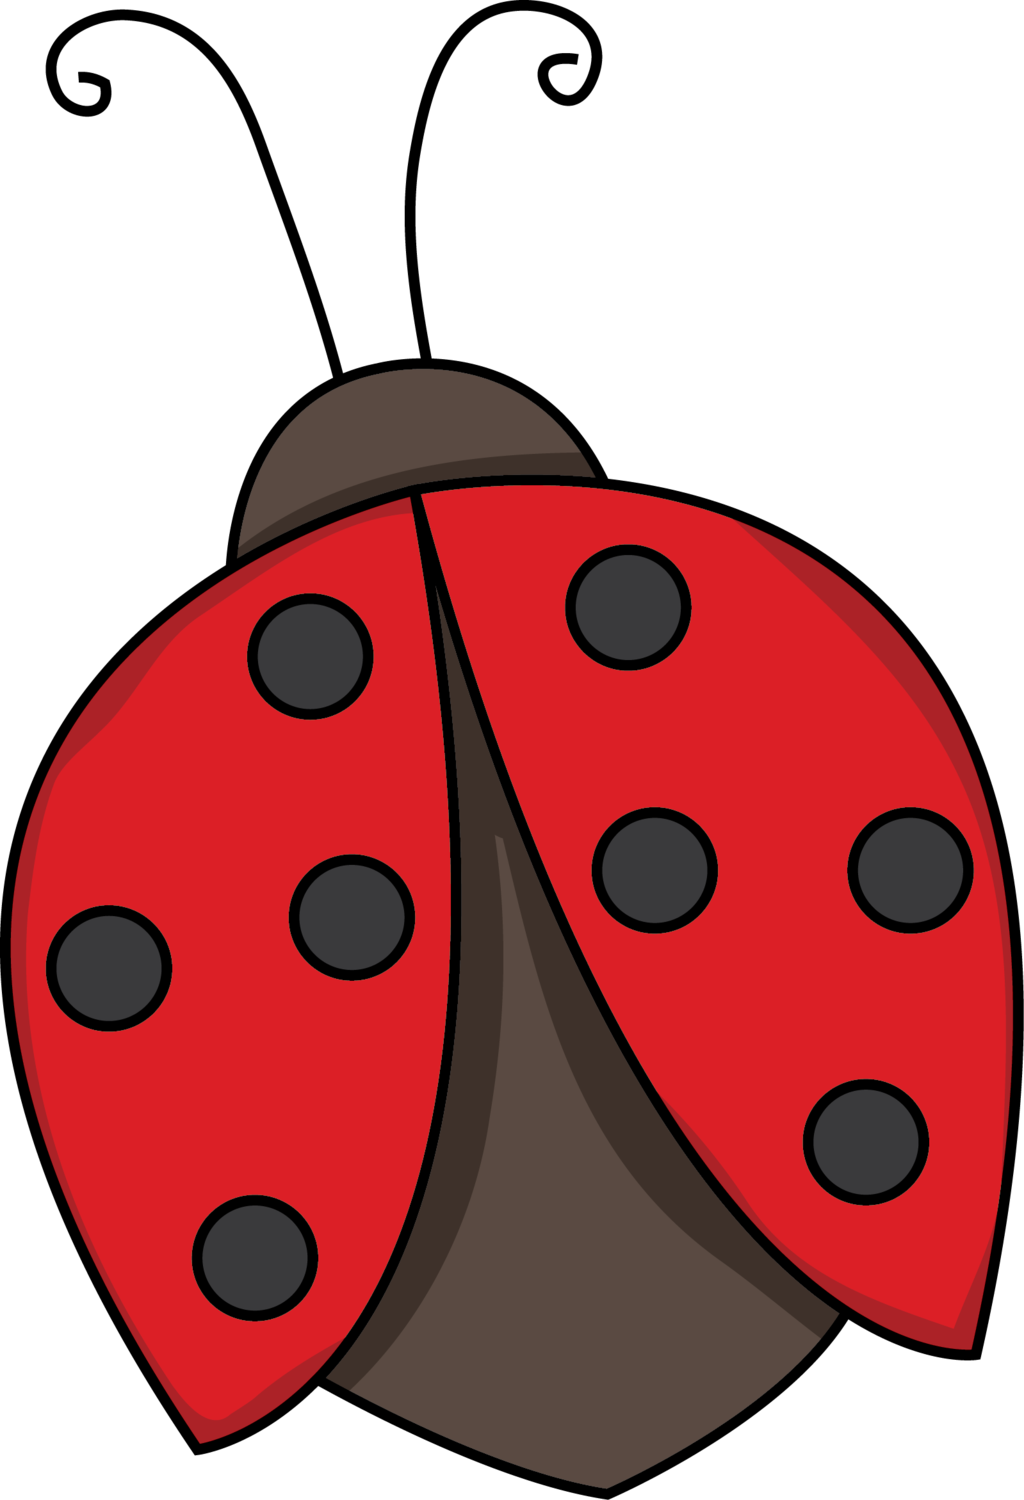 Ladybug clipart ladybug wing. Wings pencil and in